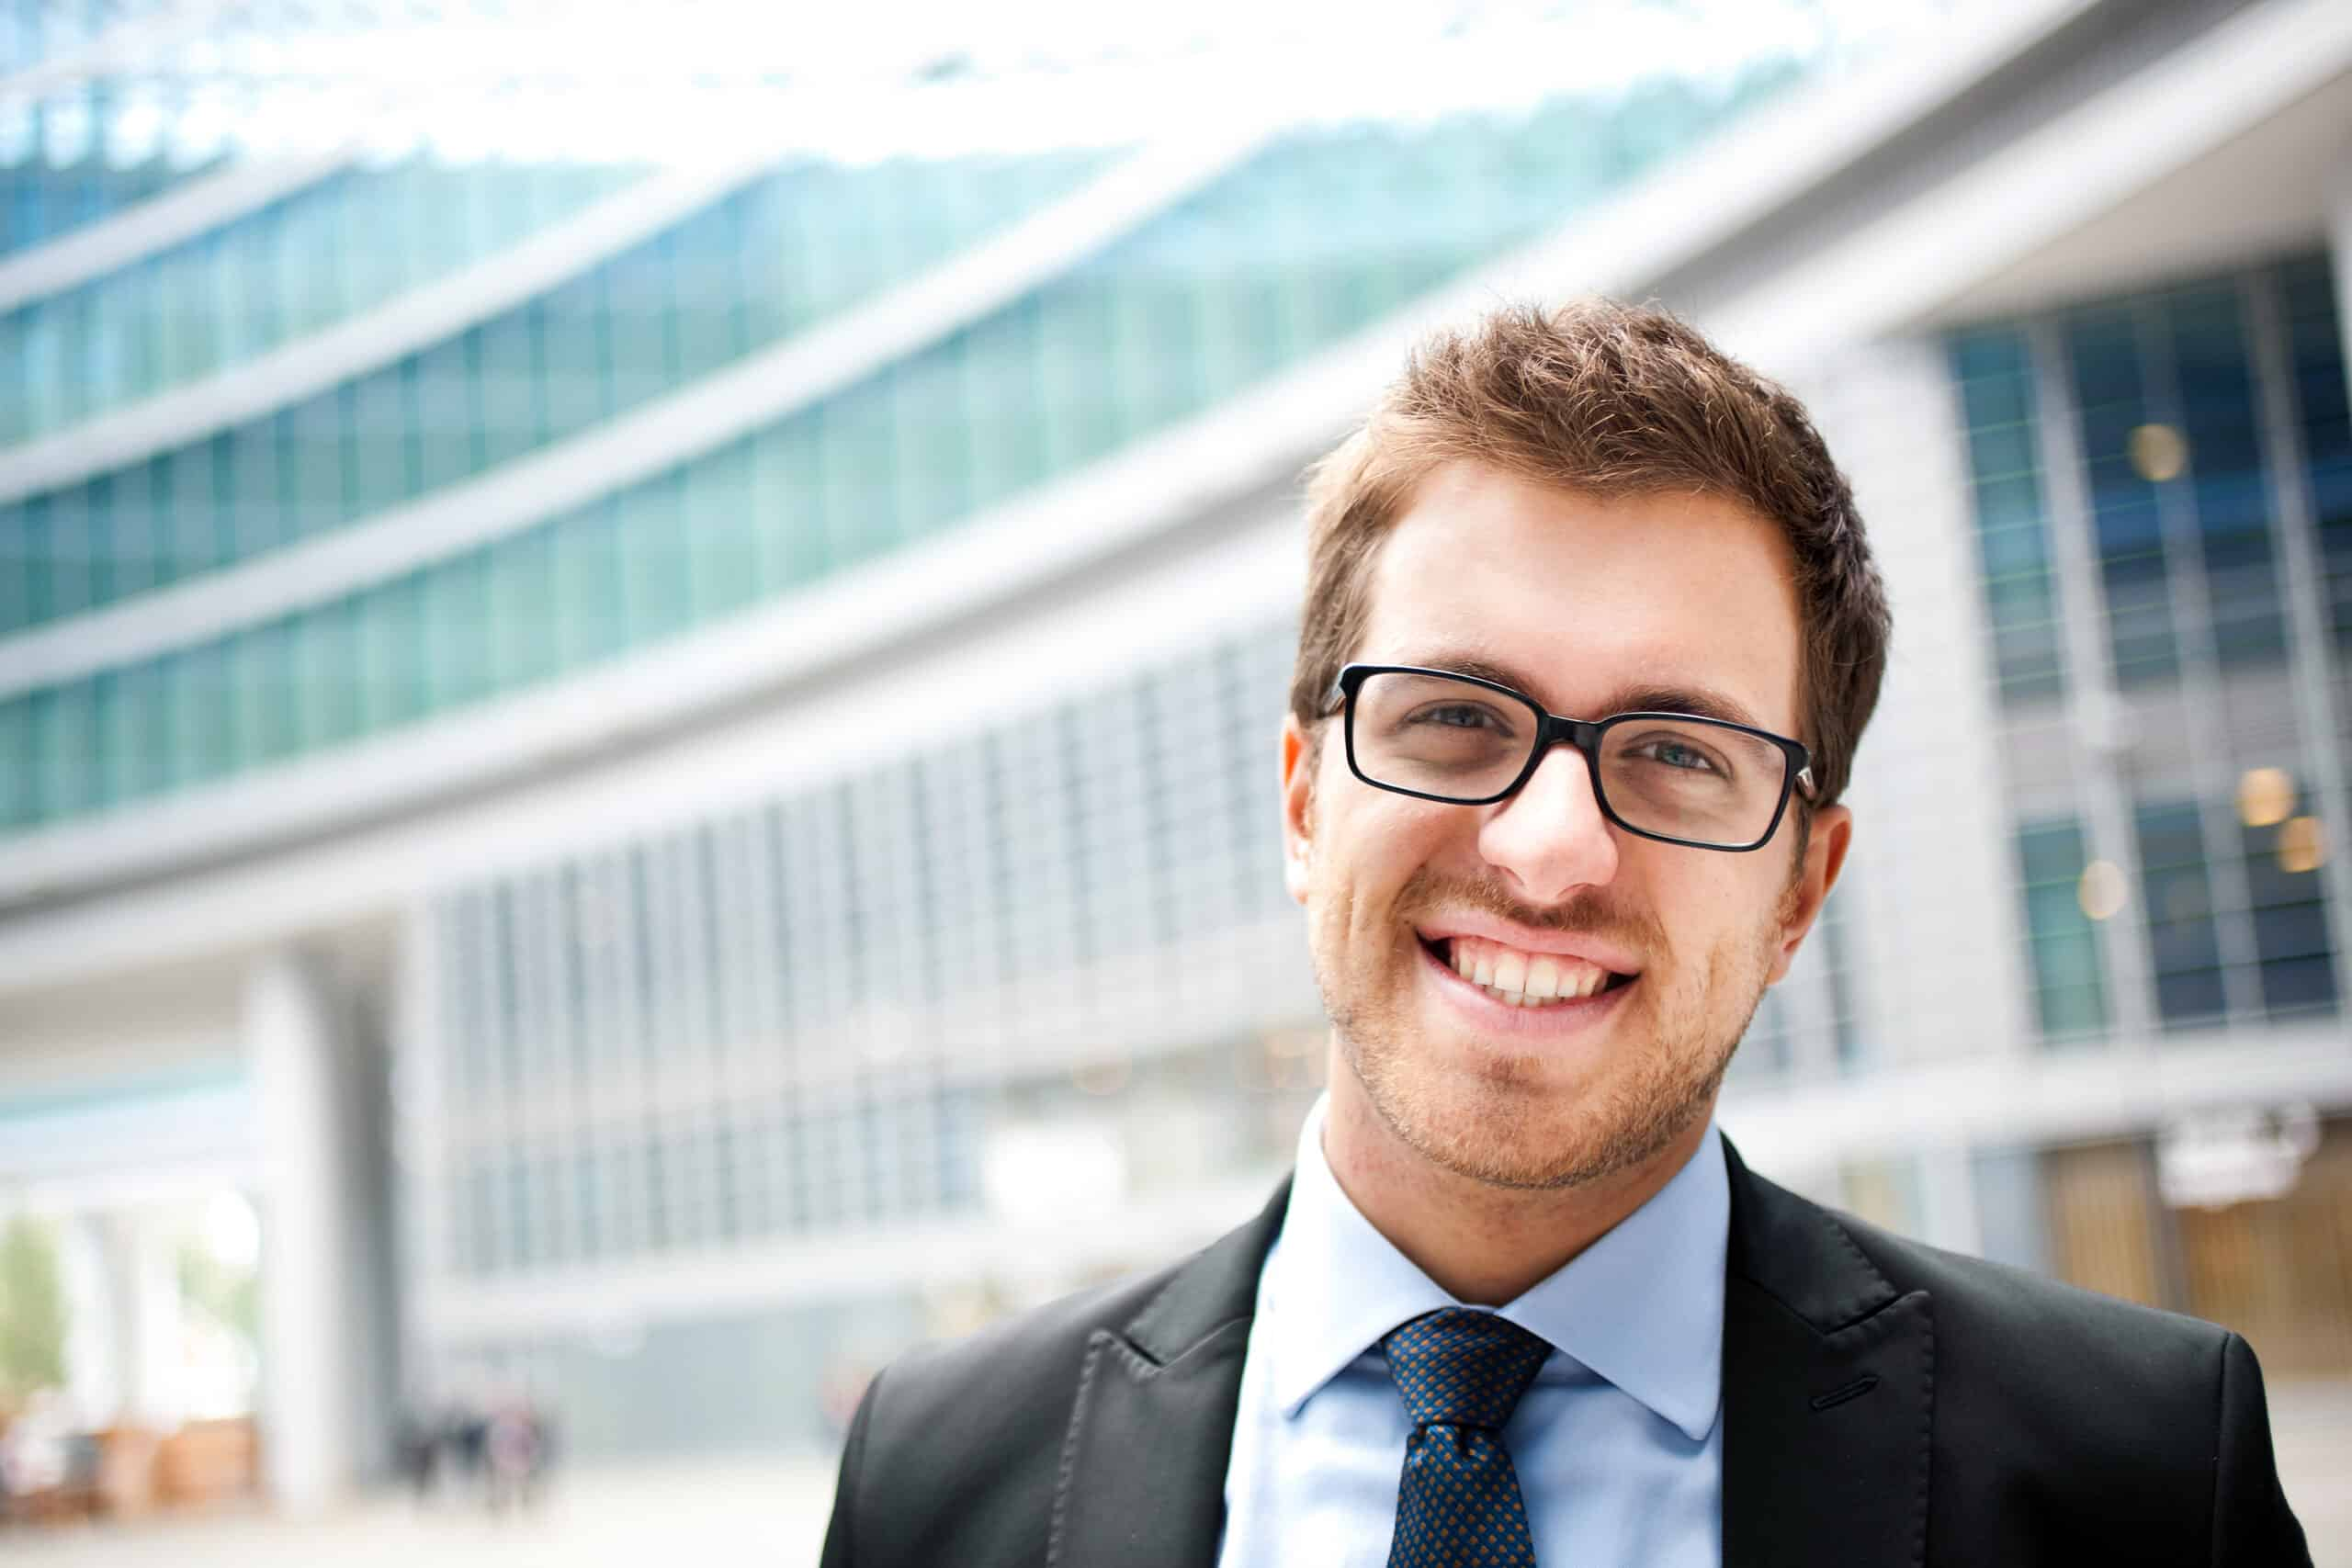 Portrait,Of,An,Handsome,Businessman,In,An,Urban,Setting